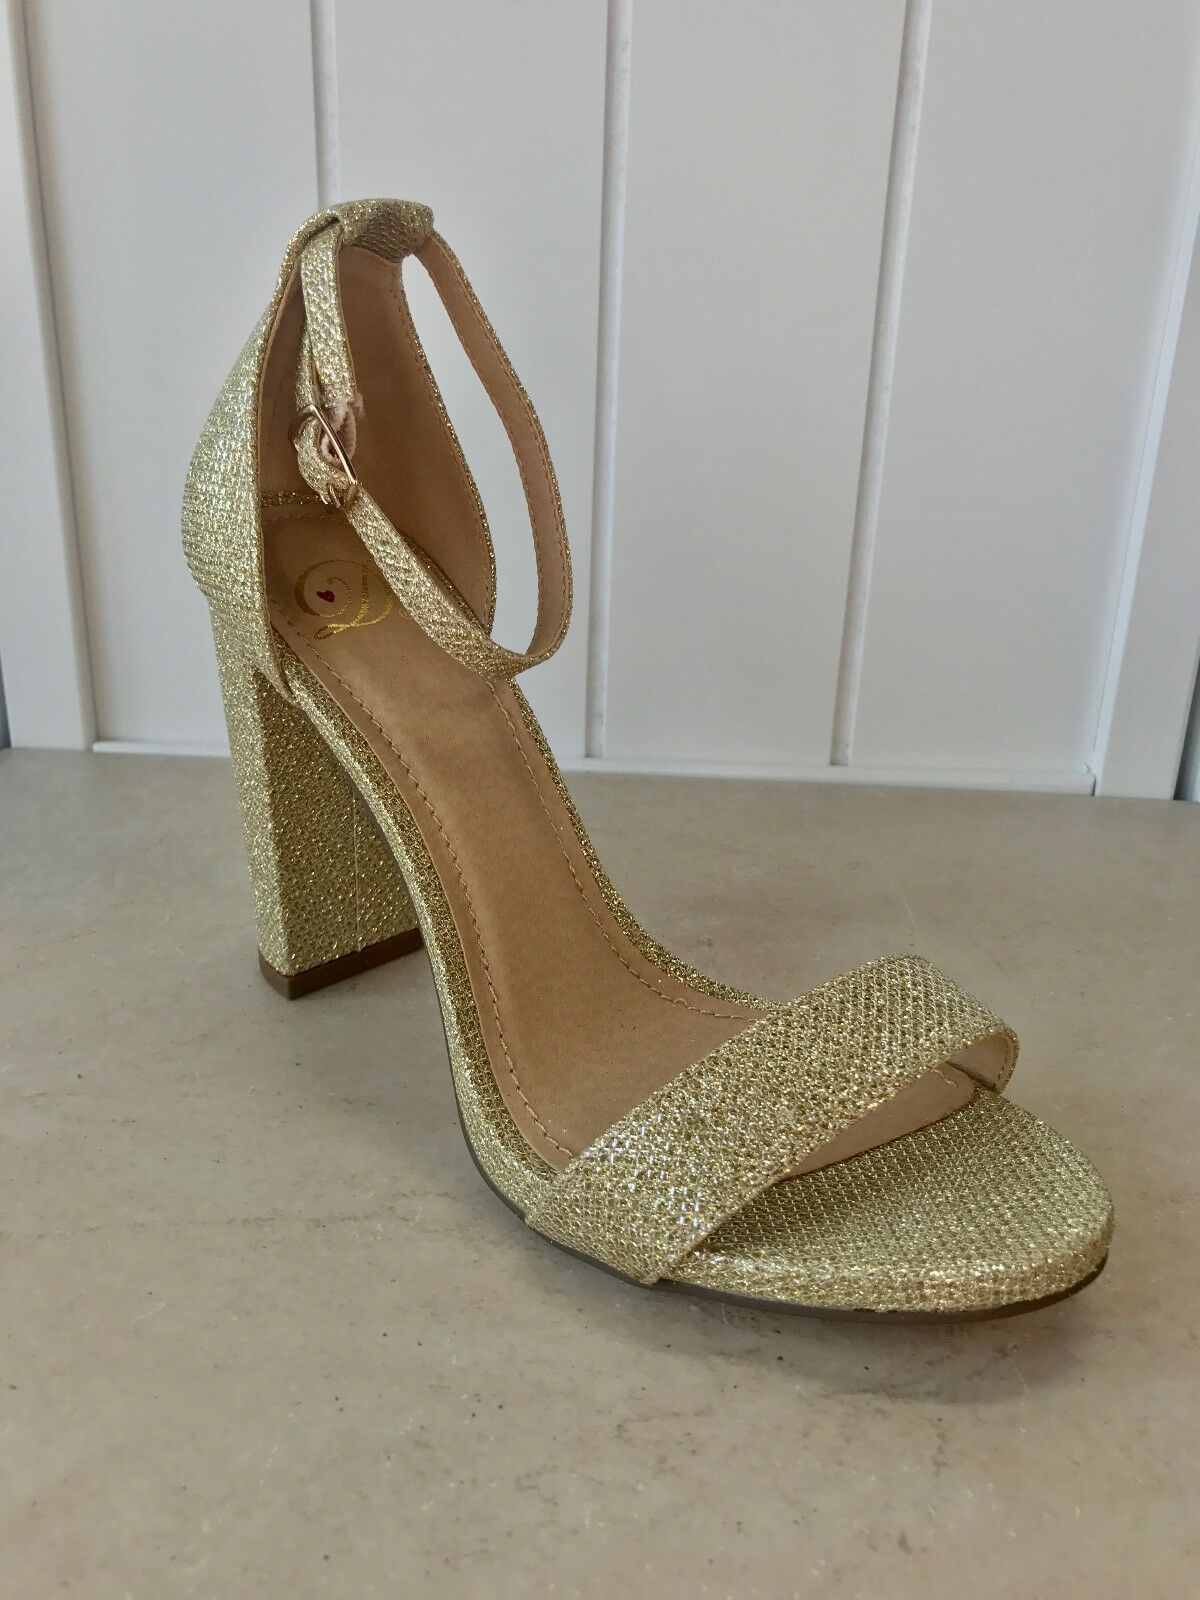 Women's High Gold Glitter App. 3.75